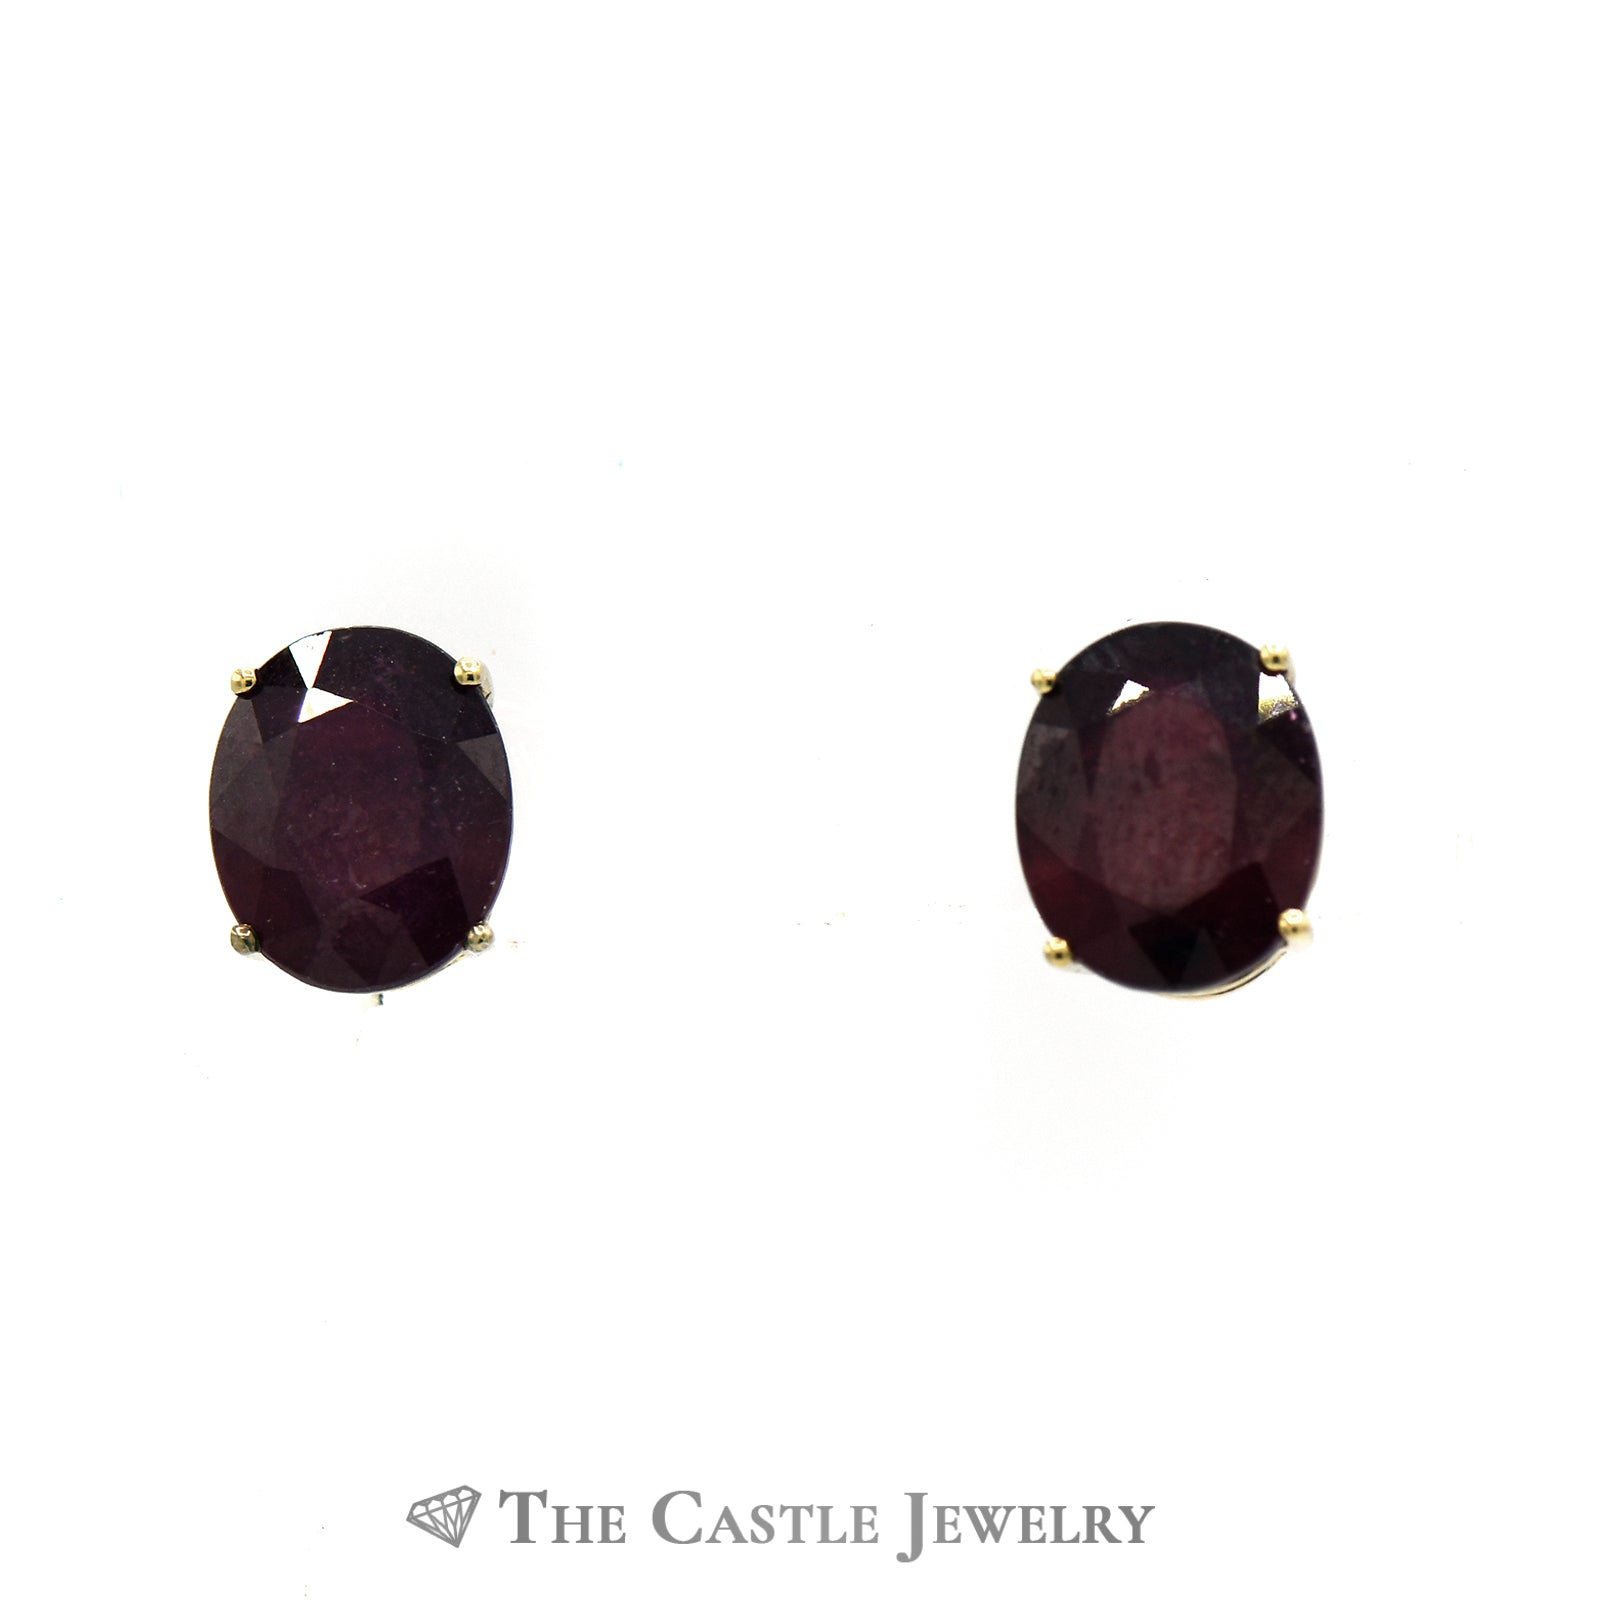 Oval Cut Ruby Stud Earrings in 4 Prong Mounting w/ Butterfly Backs Crafted in 14k Yellow Gold